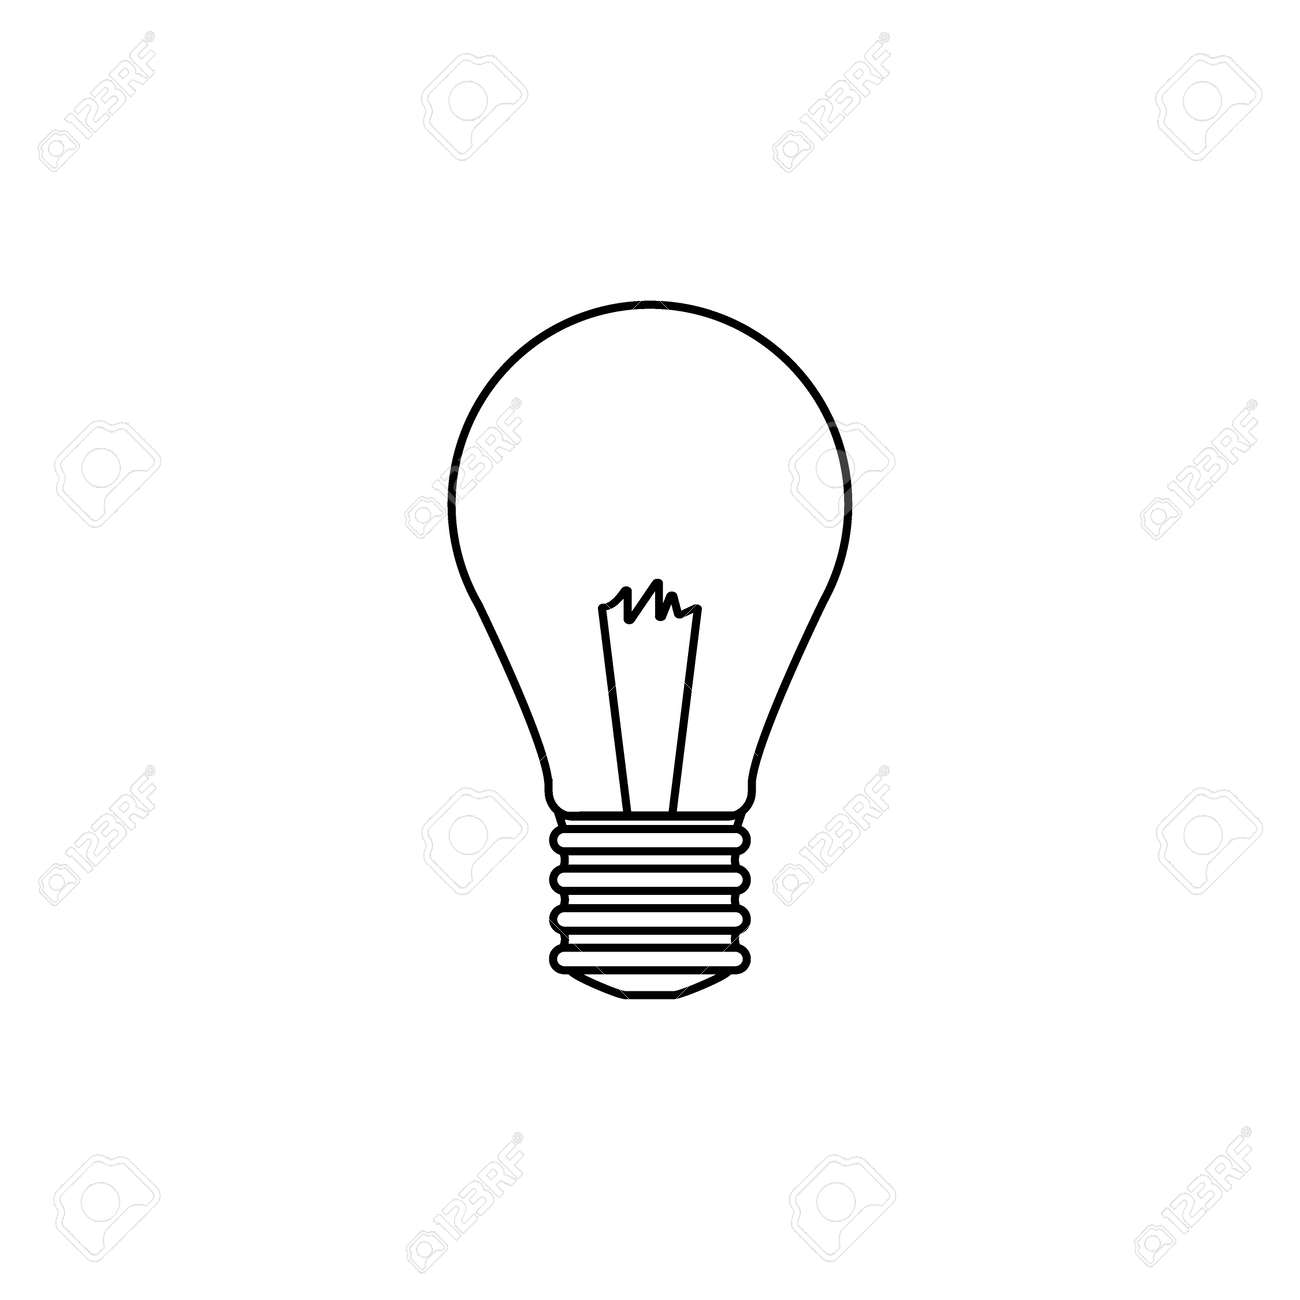 icon lighting white light bulb line icon lighting electric lamp isolated on white background idea sign line icon lamp on white